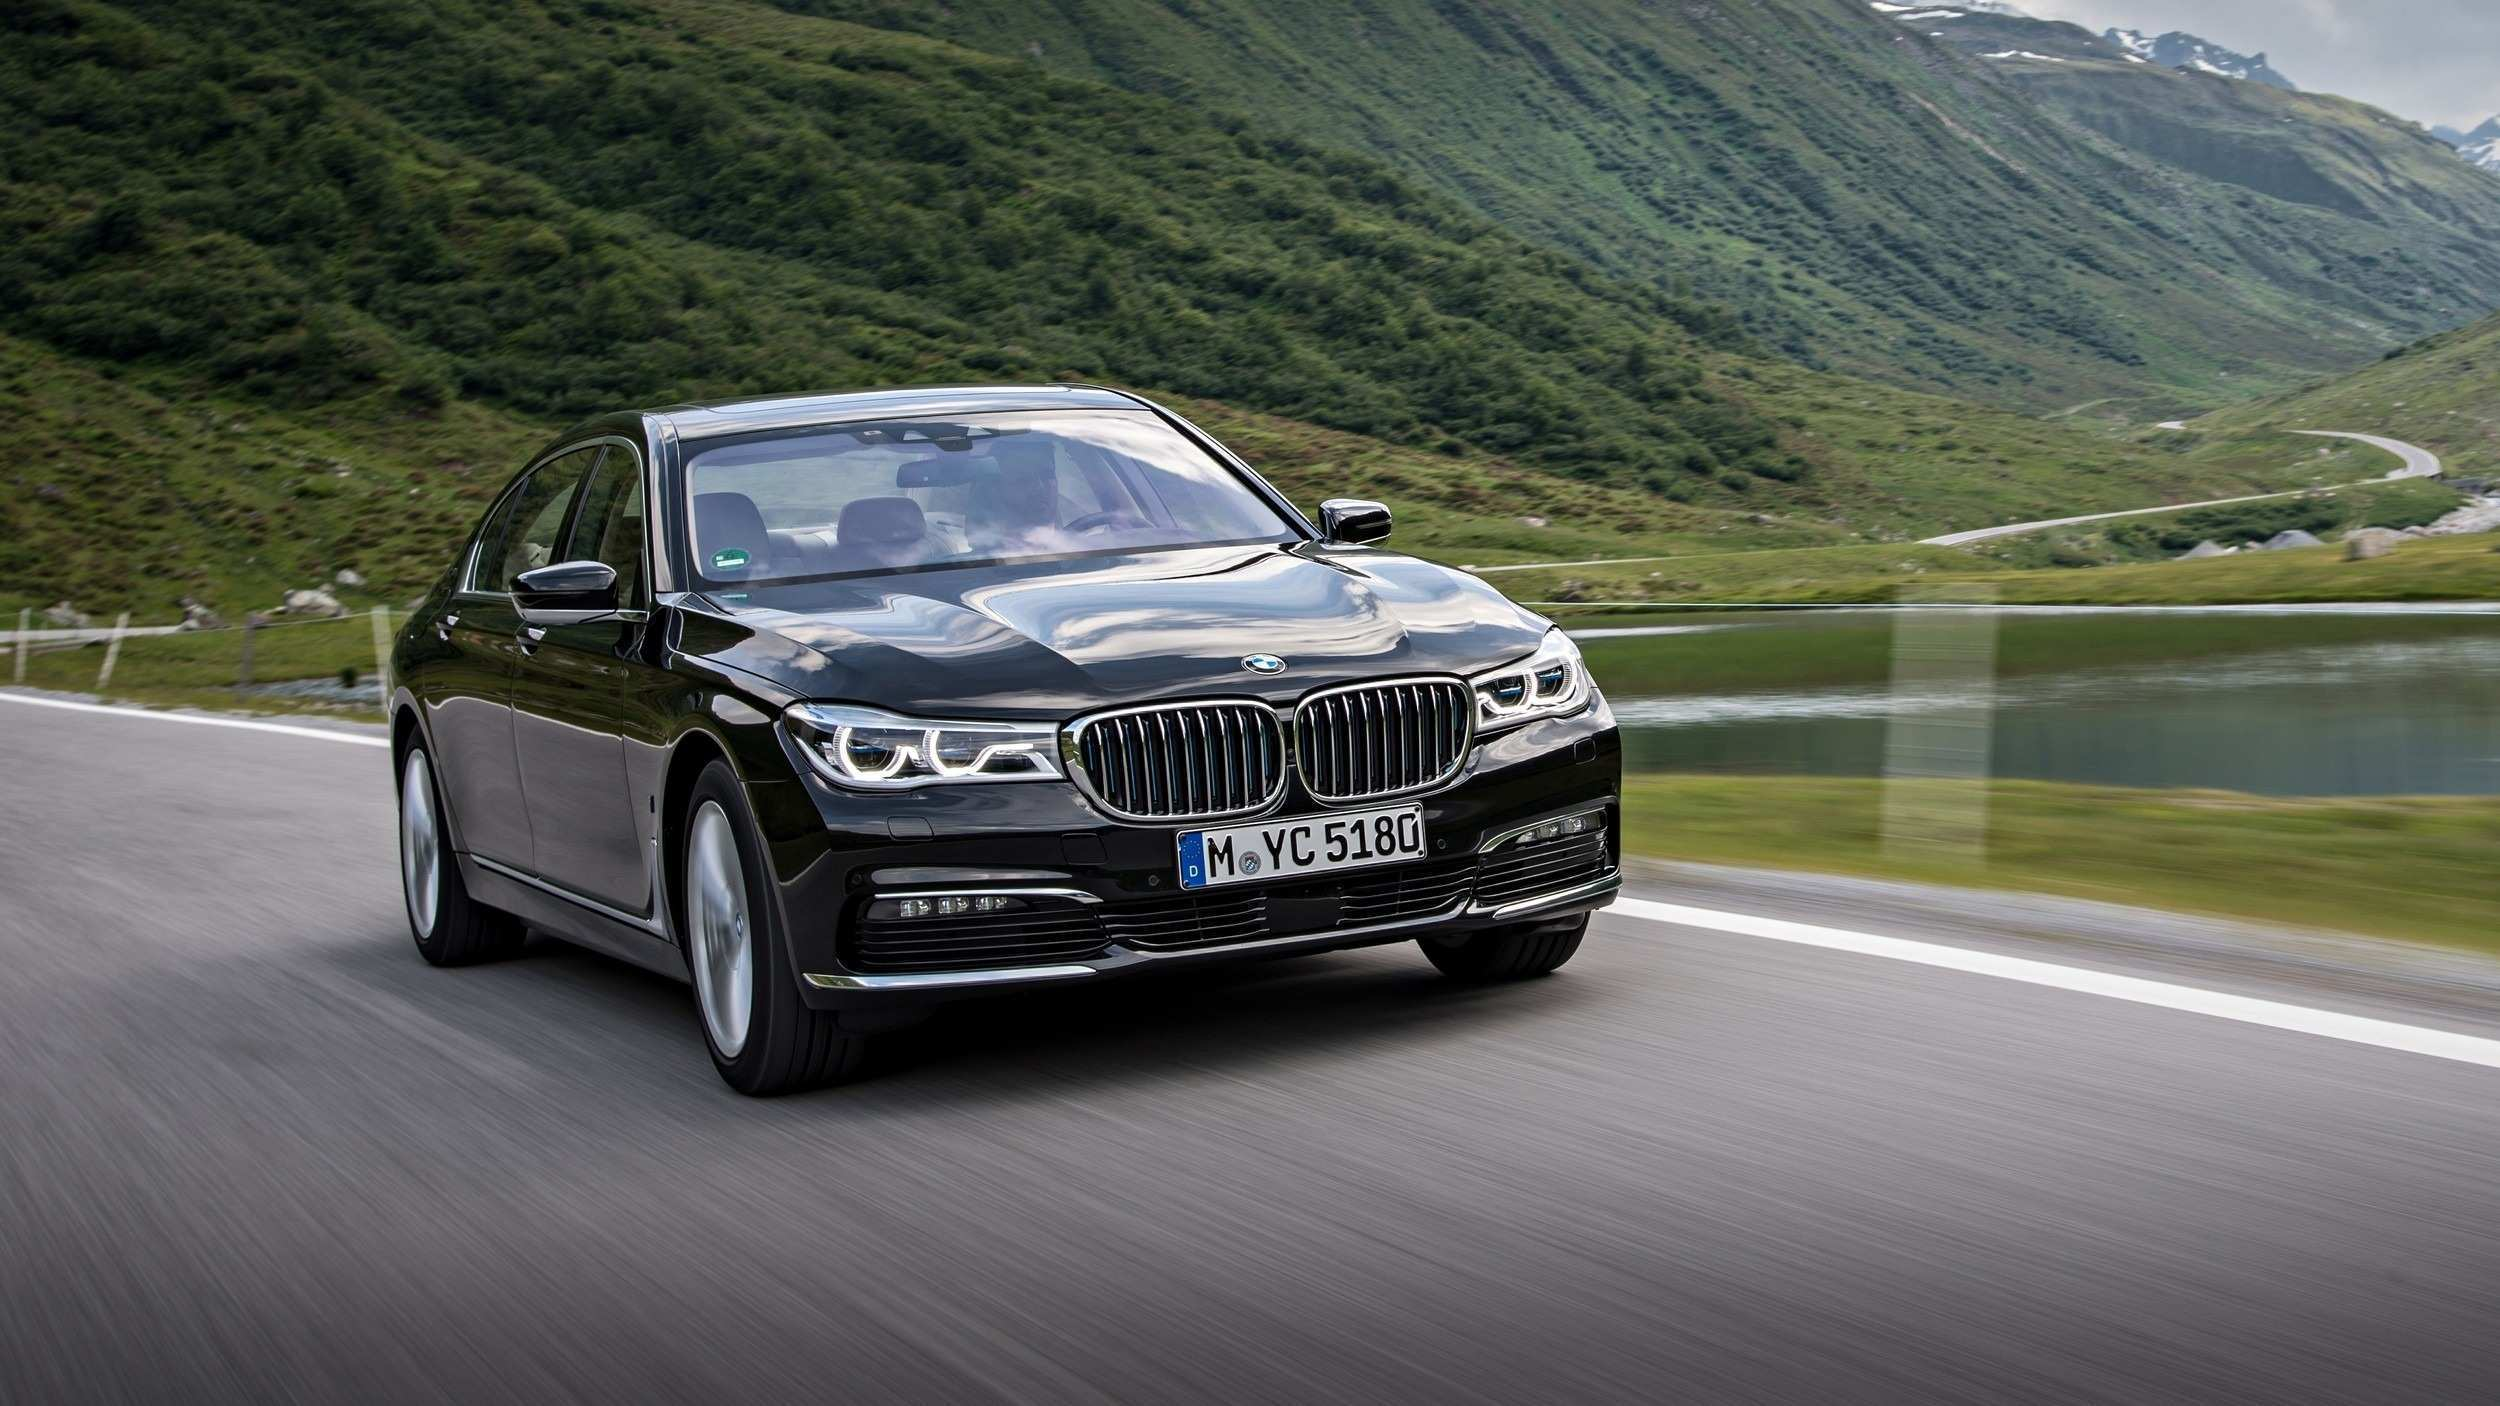 55 The 2019 BMW 7 Series Perfection New Performance And New Engine